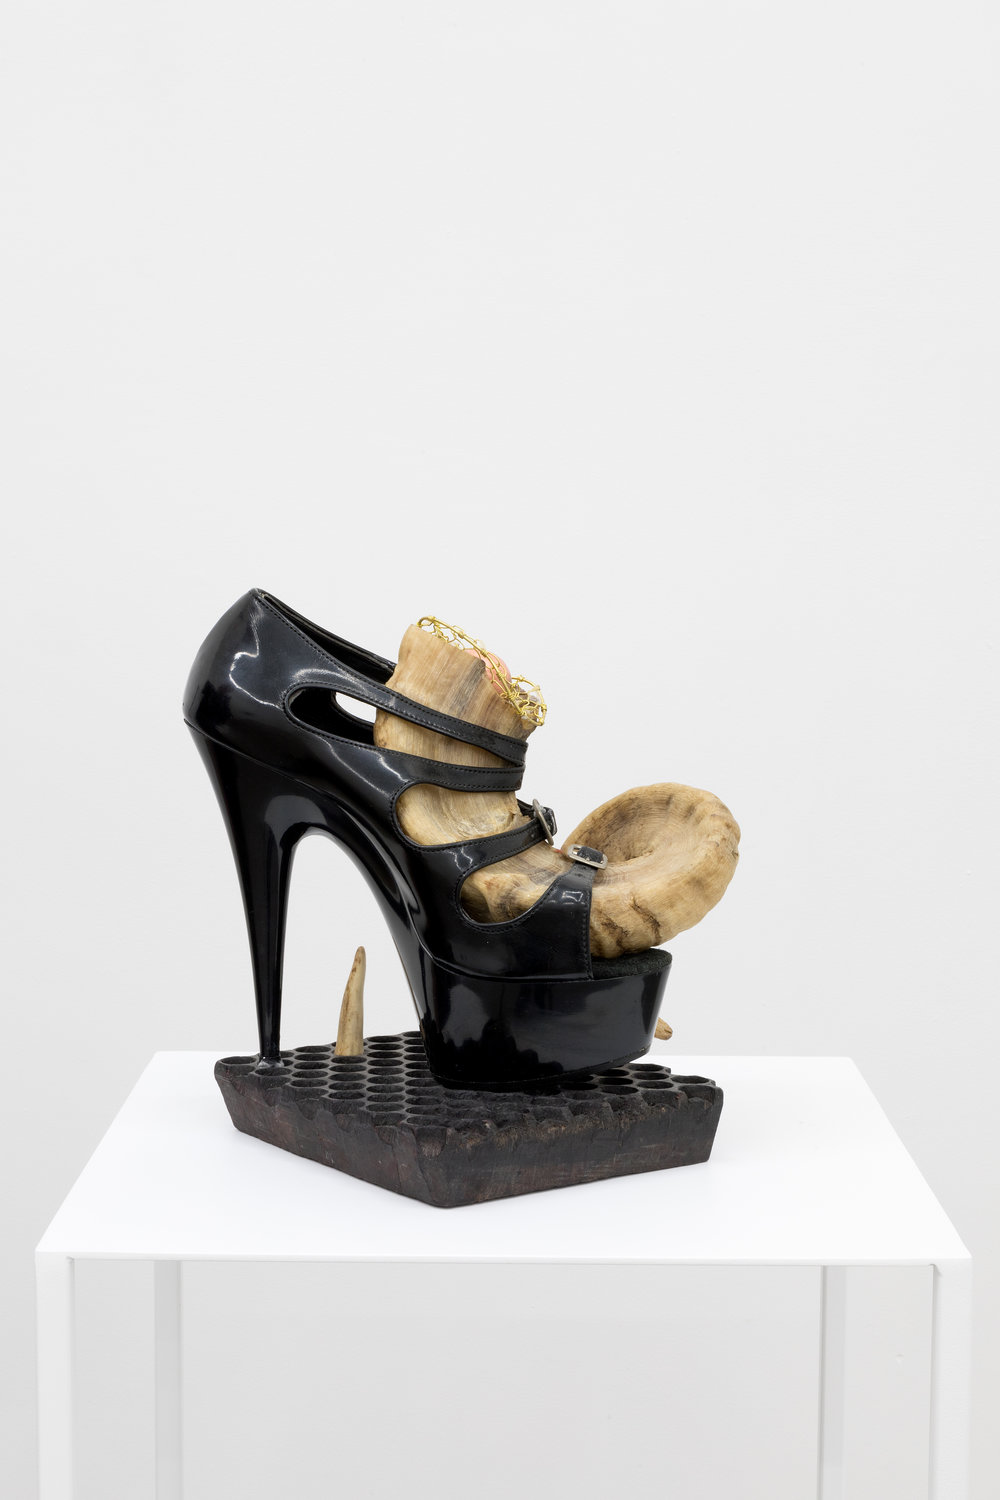 Genesis BREYER P-ORRIDGE,  Shoe Horn #3 , 2014, Ram horn, shoe worn by Genesis as Lady Sarah (he/r dominatrix persona), sting ray skin, ermine fur, bone, Nepalese fabric-printing square, brass netting, copper ball, 9 x 9 x 8 in